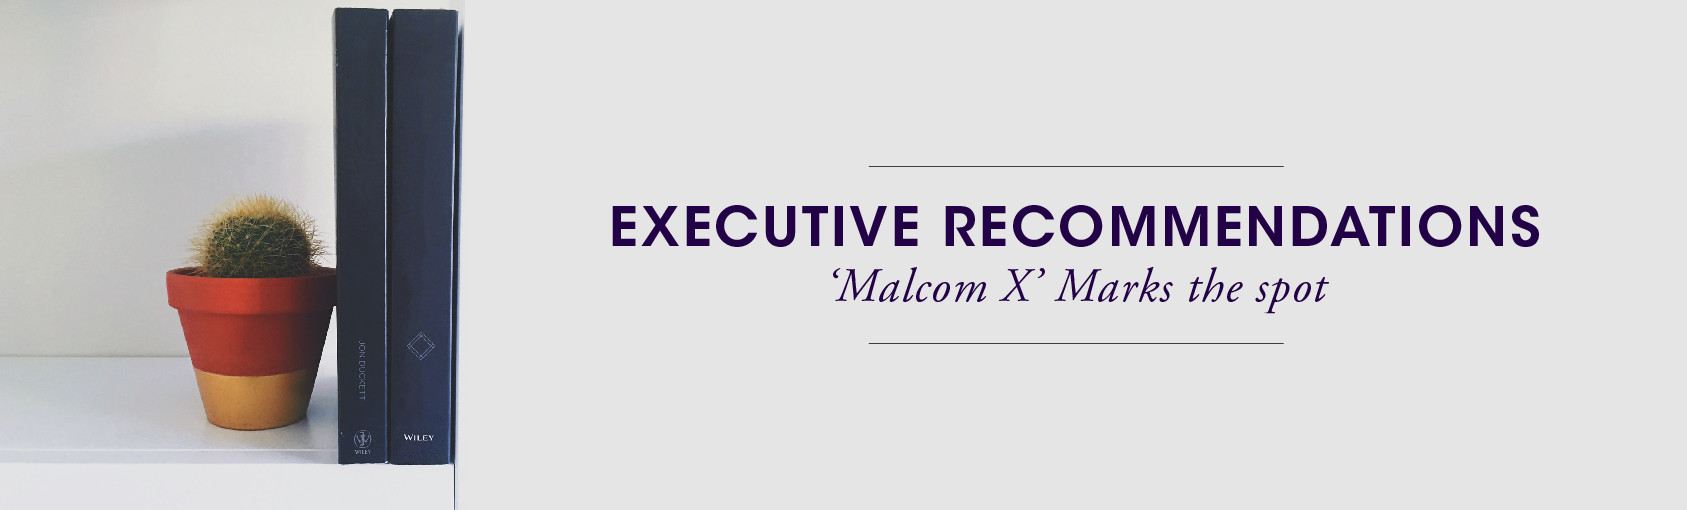 Executive Recommendations: Malcom X Marks the Spot banner